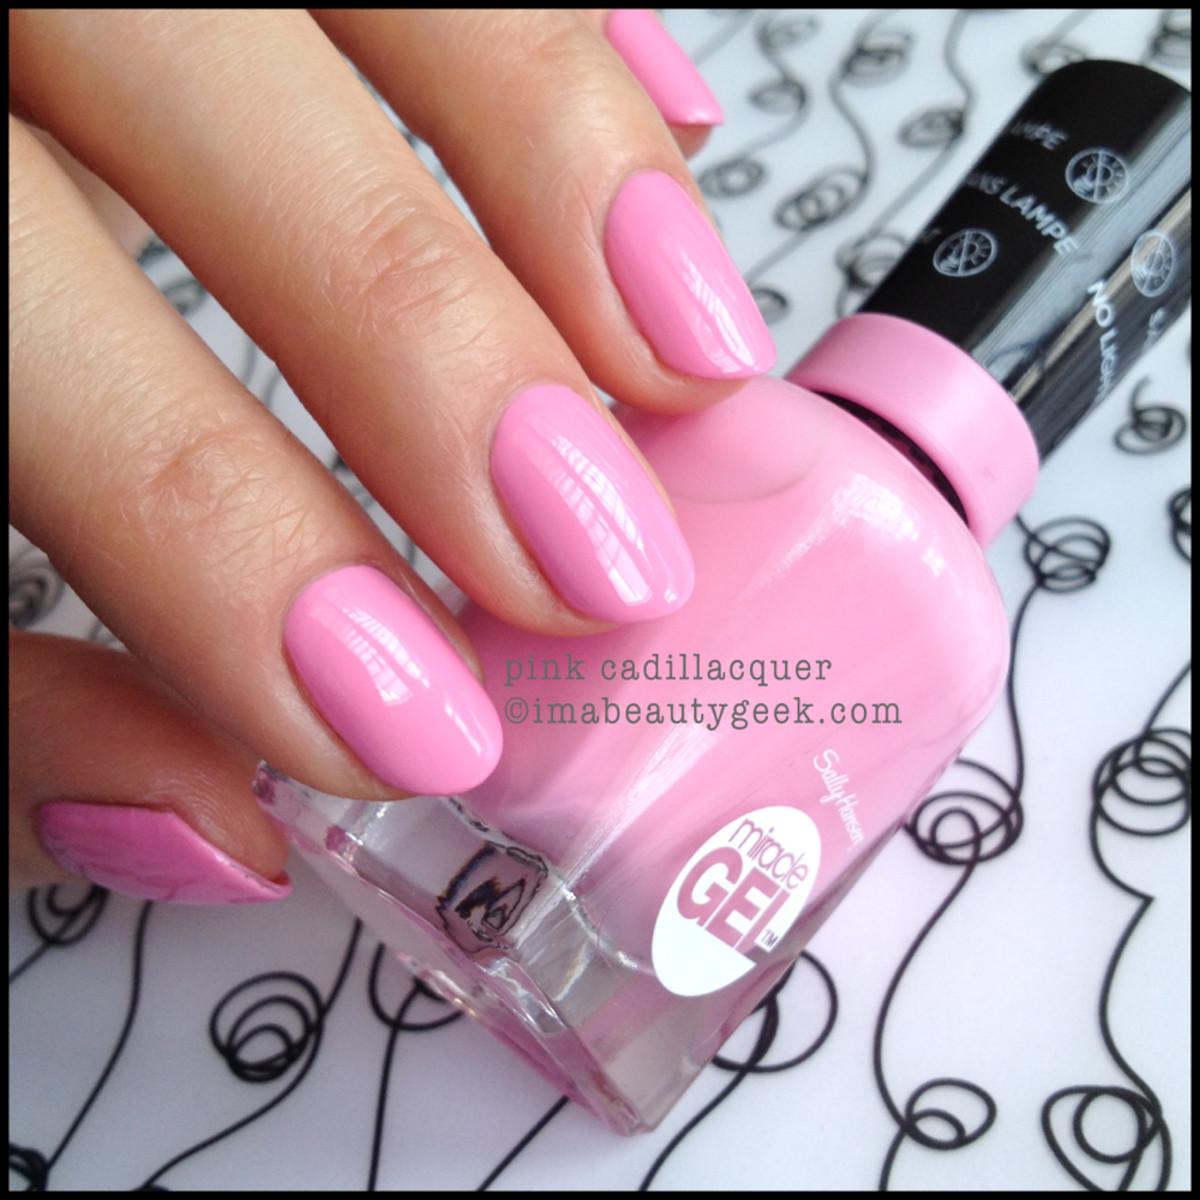 Sally Hansen Miracle Gel Pink Cadillacquer 2014